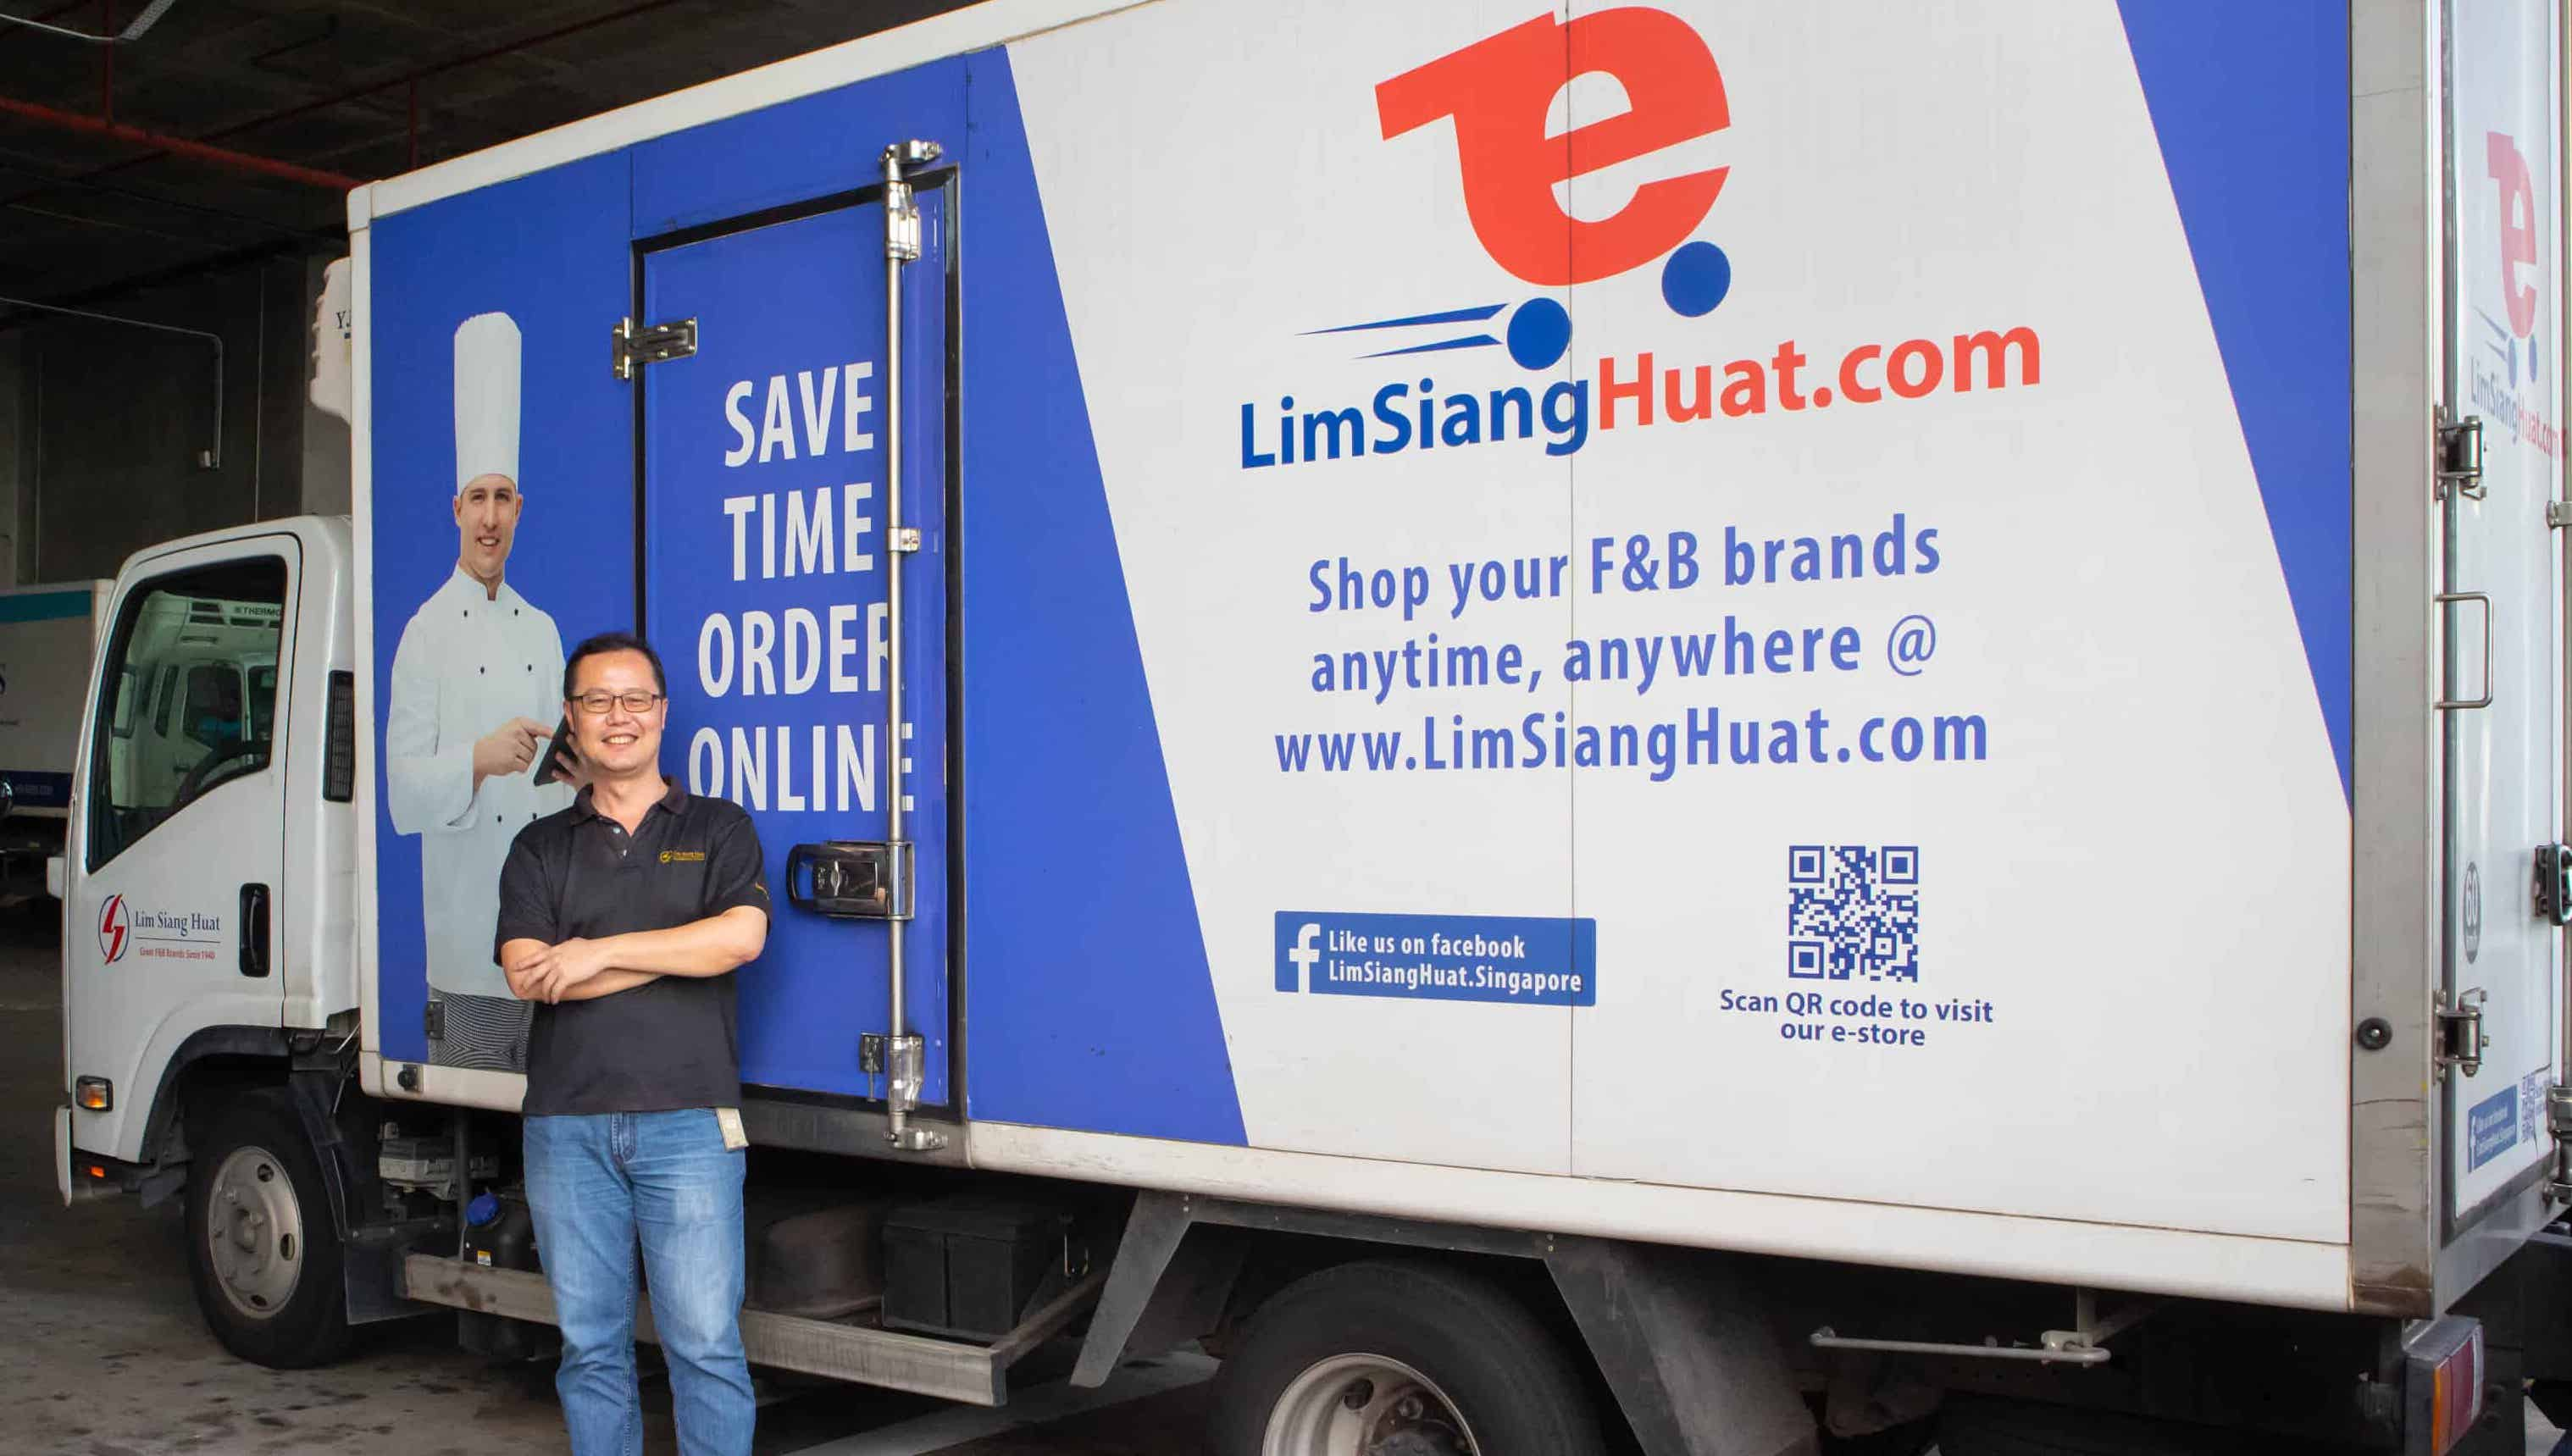 A photo of a Lim Siang Huat's operations manager standing in front of a branded reefer truck that is powered by Cartrack's fleet management solution.